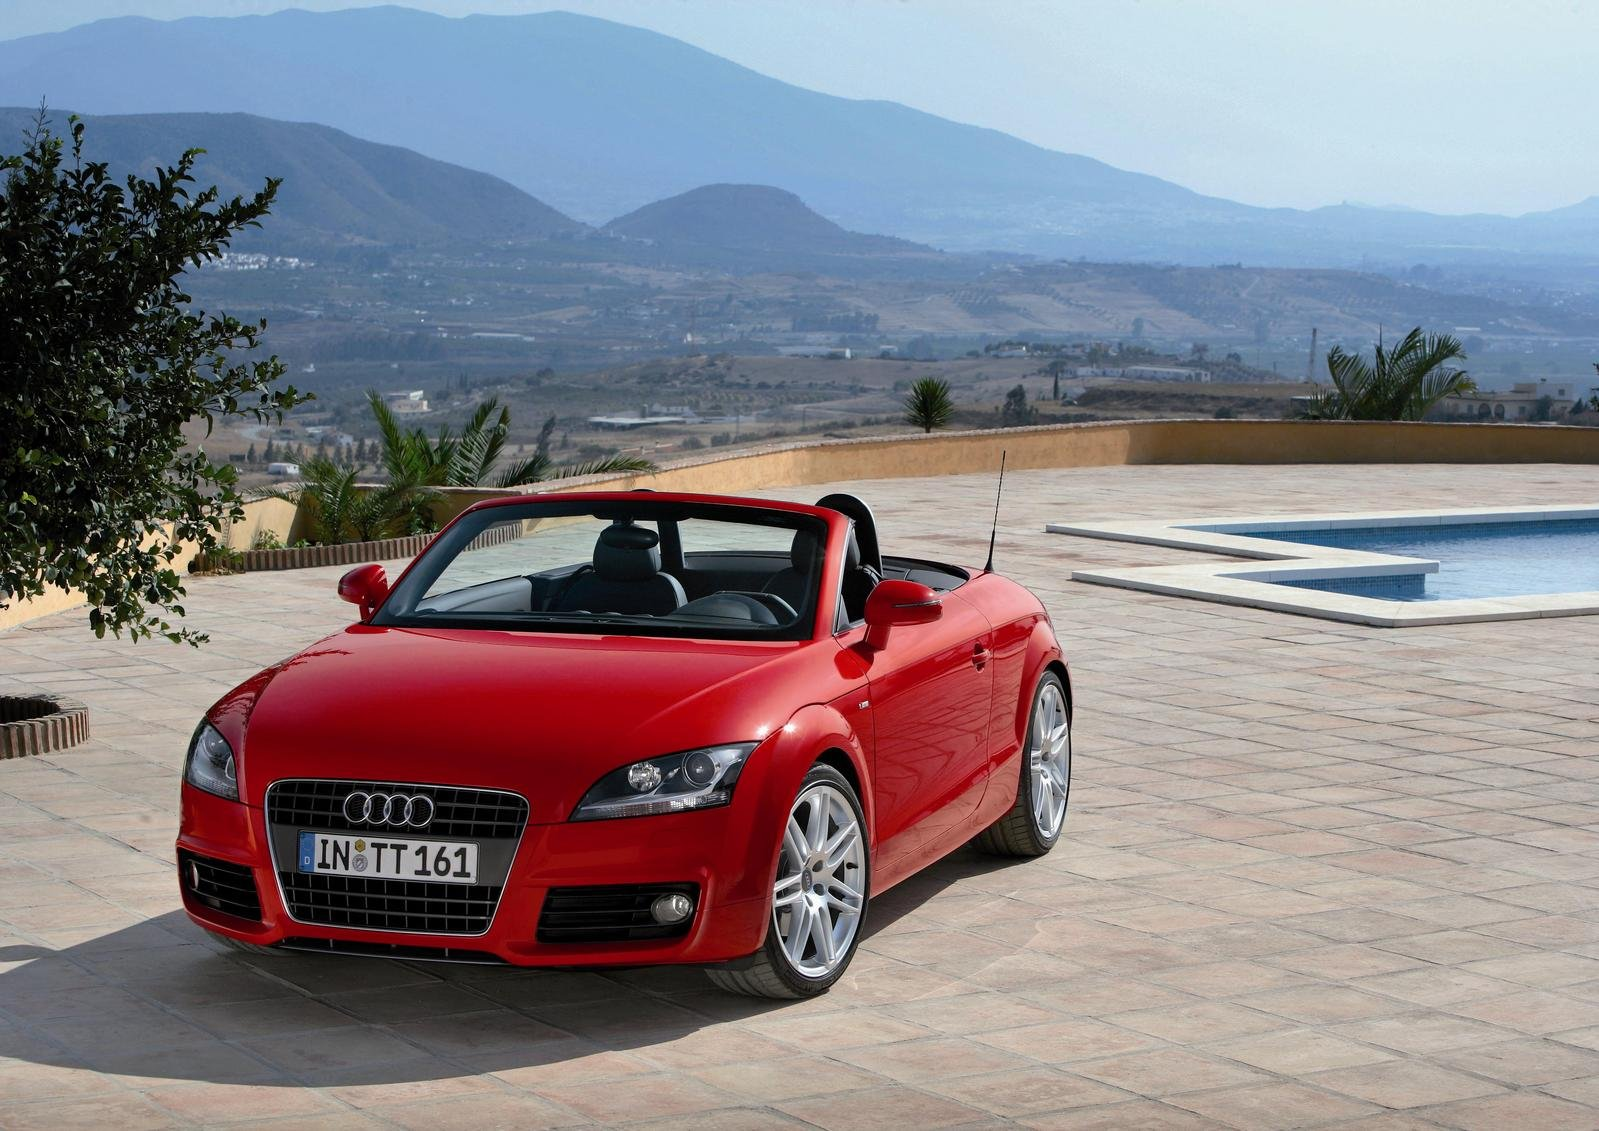 2007 audi tt roadster picture 117568 car review top speed. Black Bedroom Furniture Sets. Home Design Ideas